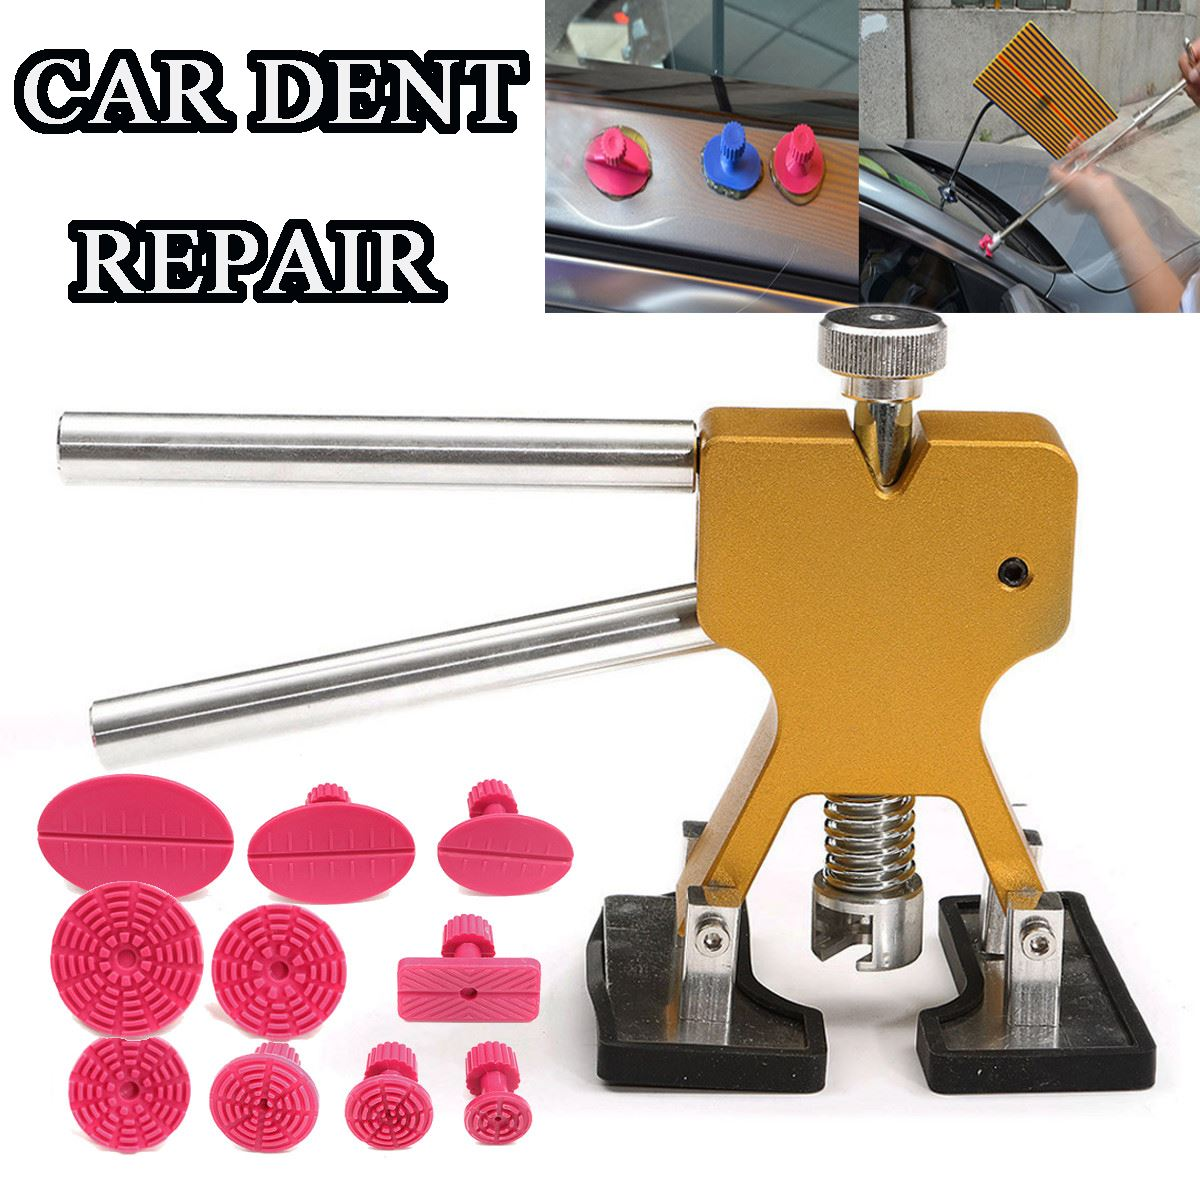 Adjustable Car Paintless Dent Remover Lifter PDR Repair Tool Dent Puller Glue Puller Hand Dent Lifter + 10Pcs Pink Tabs golden car dent lifter glue puller with 18pcs blue tabs repair hail removal tool